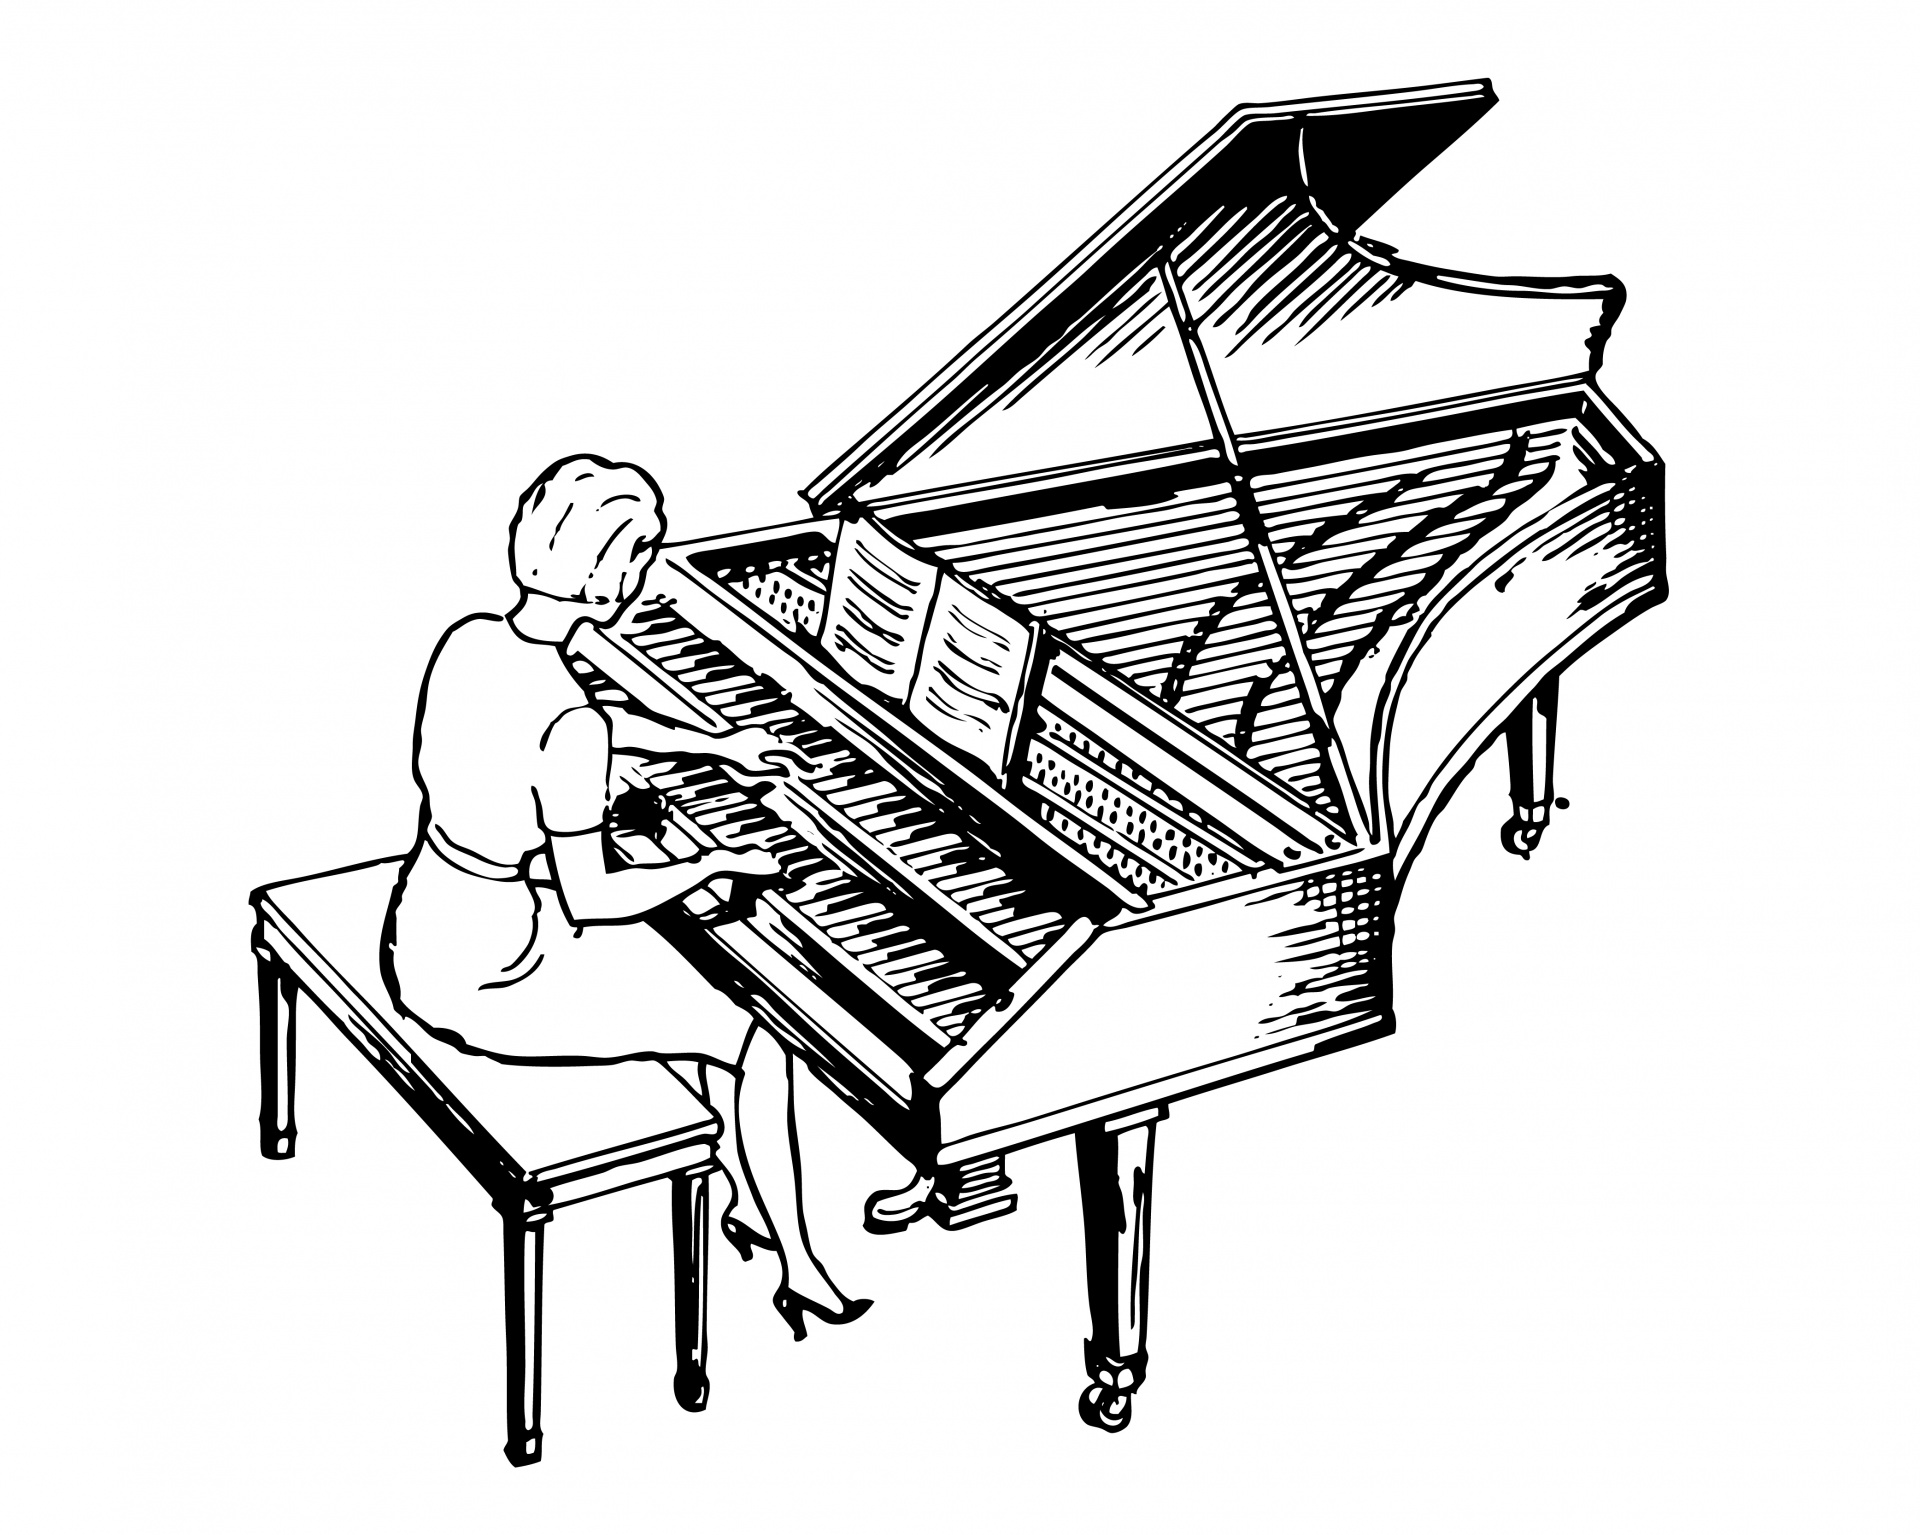 how to draw a grand piano grand piano coloring pages download and print grand piano a draw grand how piano to